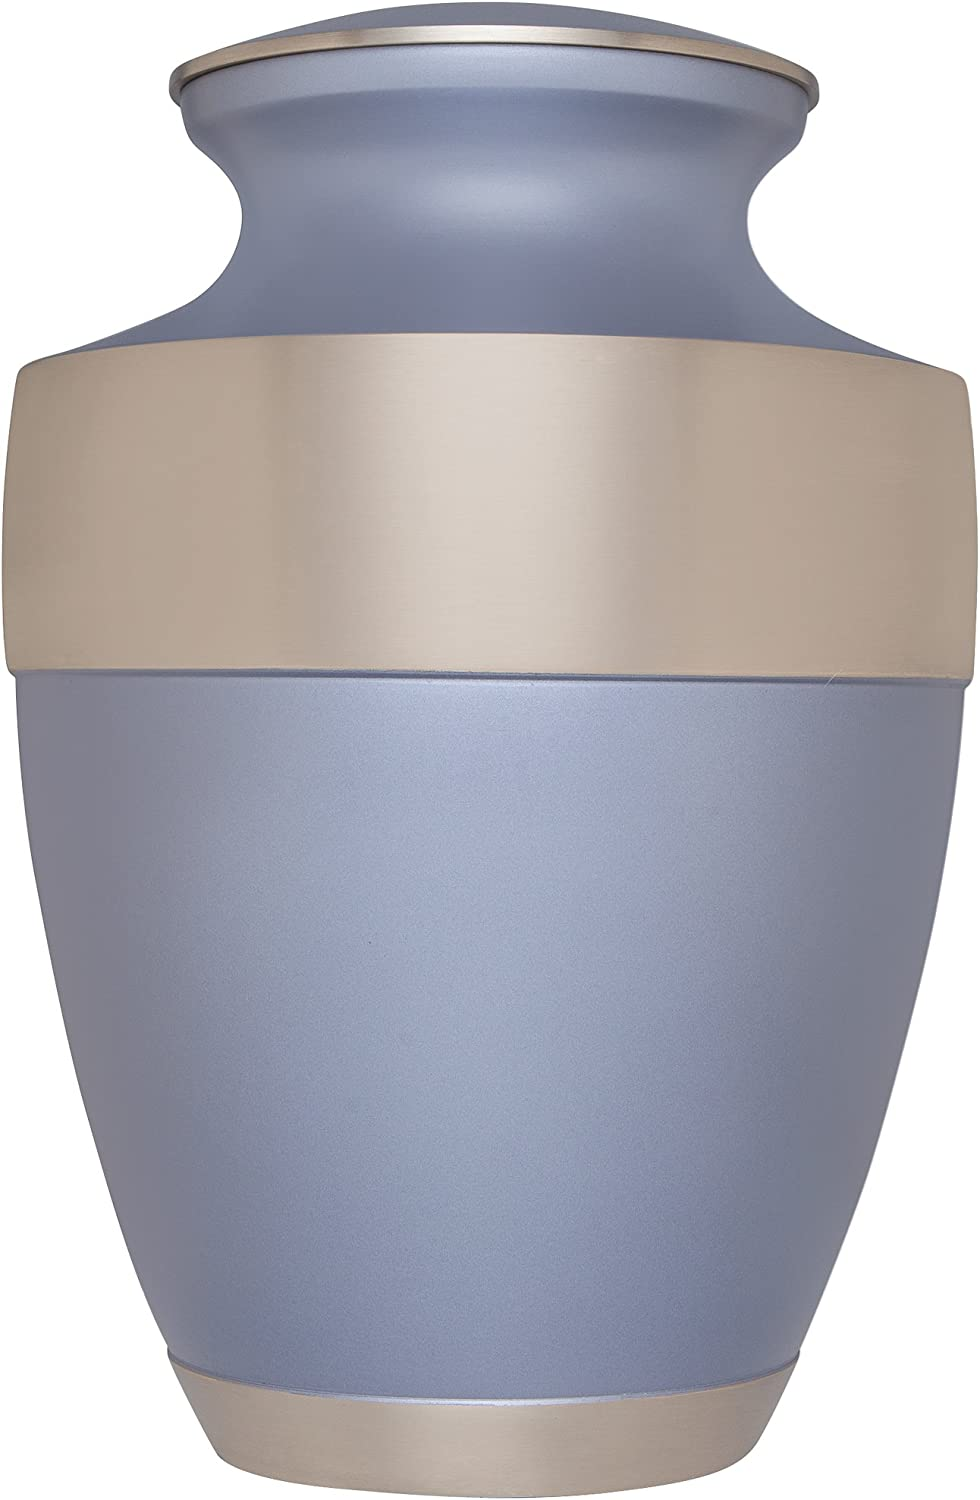 Liliane Memorials Shiny Navy Funeral Cremation Urn with Wide Gold Band Banda Blue Model in Brass for Human Ashes Suitable for Cemetery Burial Fits Remains of Adults up to 200 lbs Large//200 lb